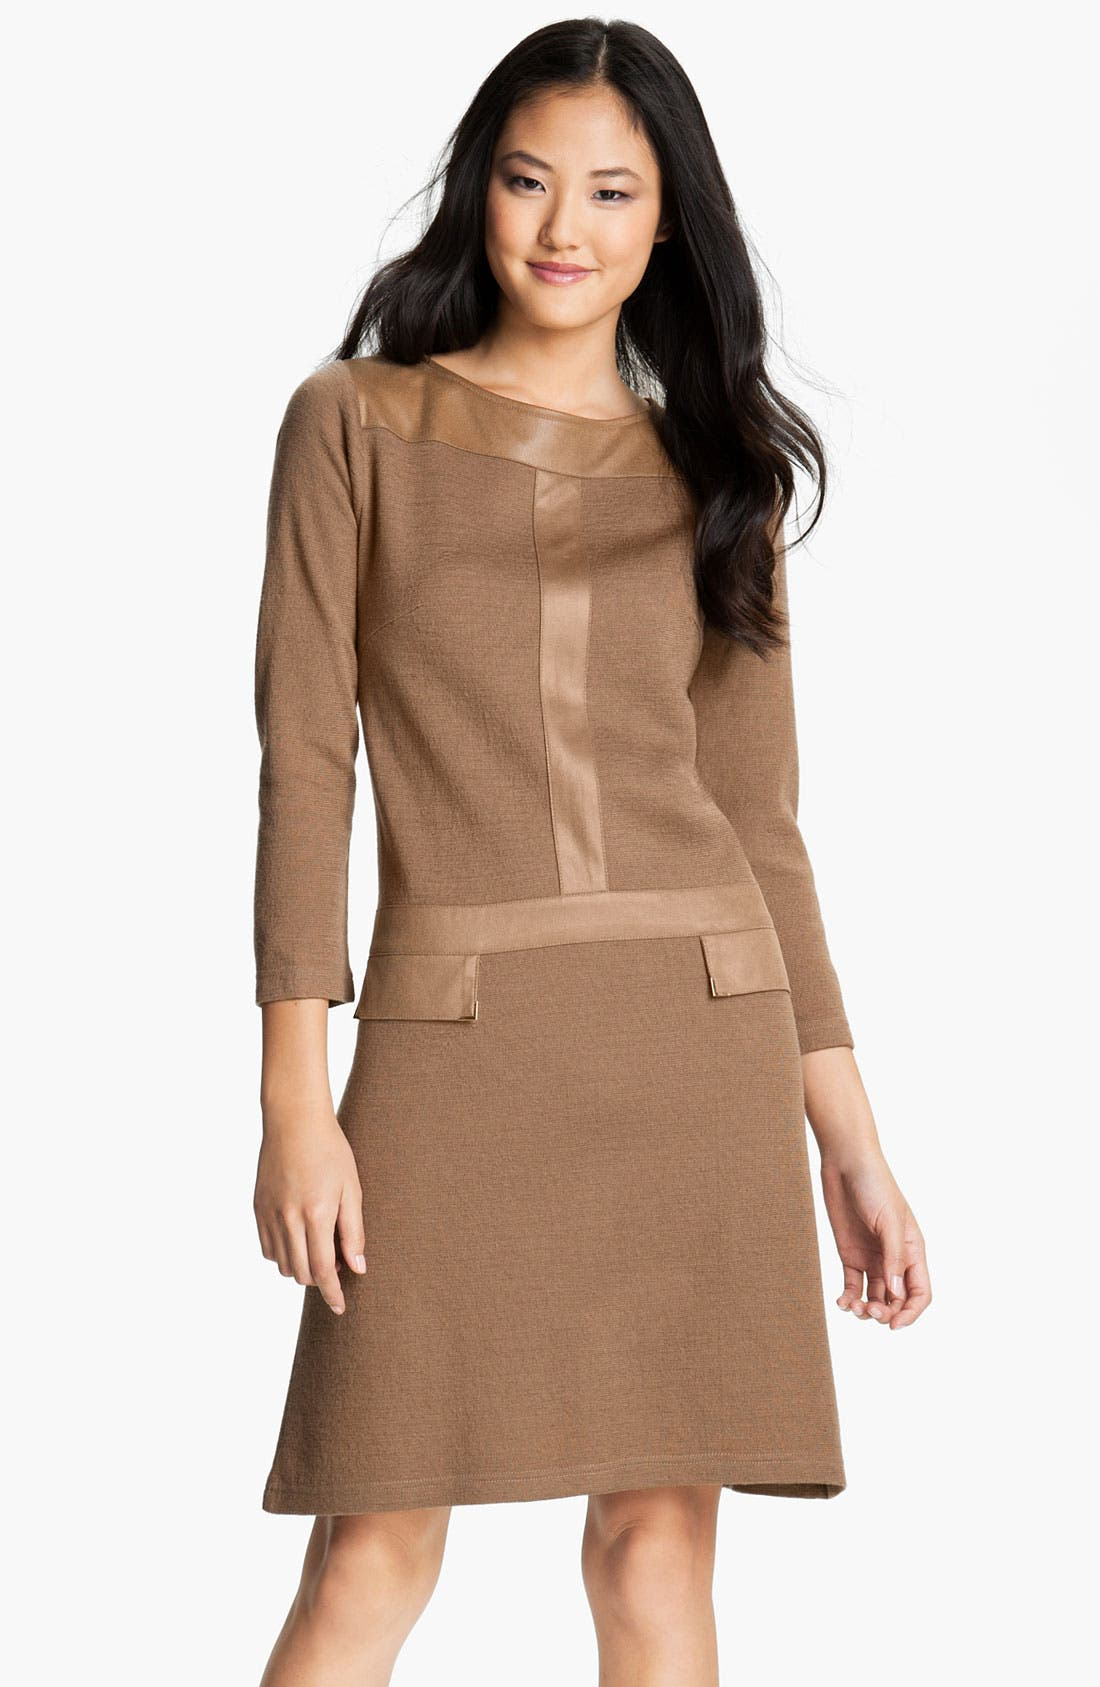 Alternate Image 1 Selected - Tahari Faux Leather Trim A-Line Sweater Dress